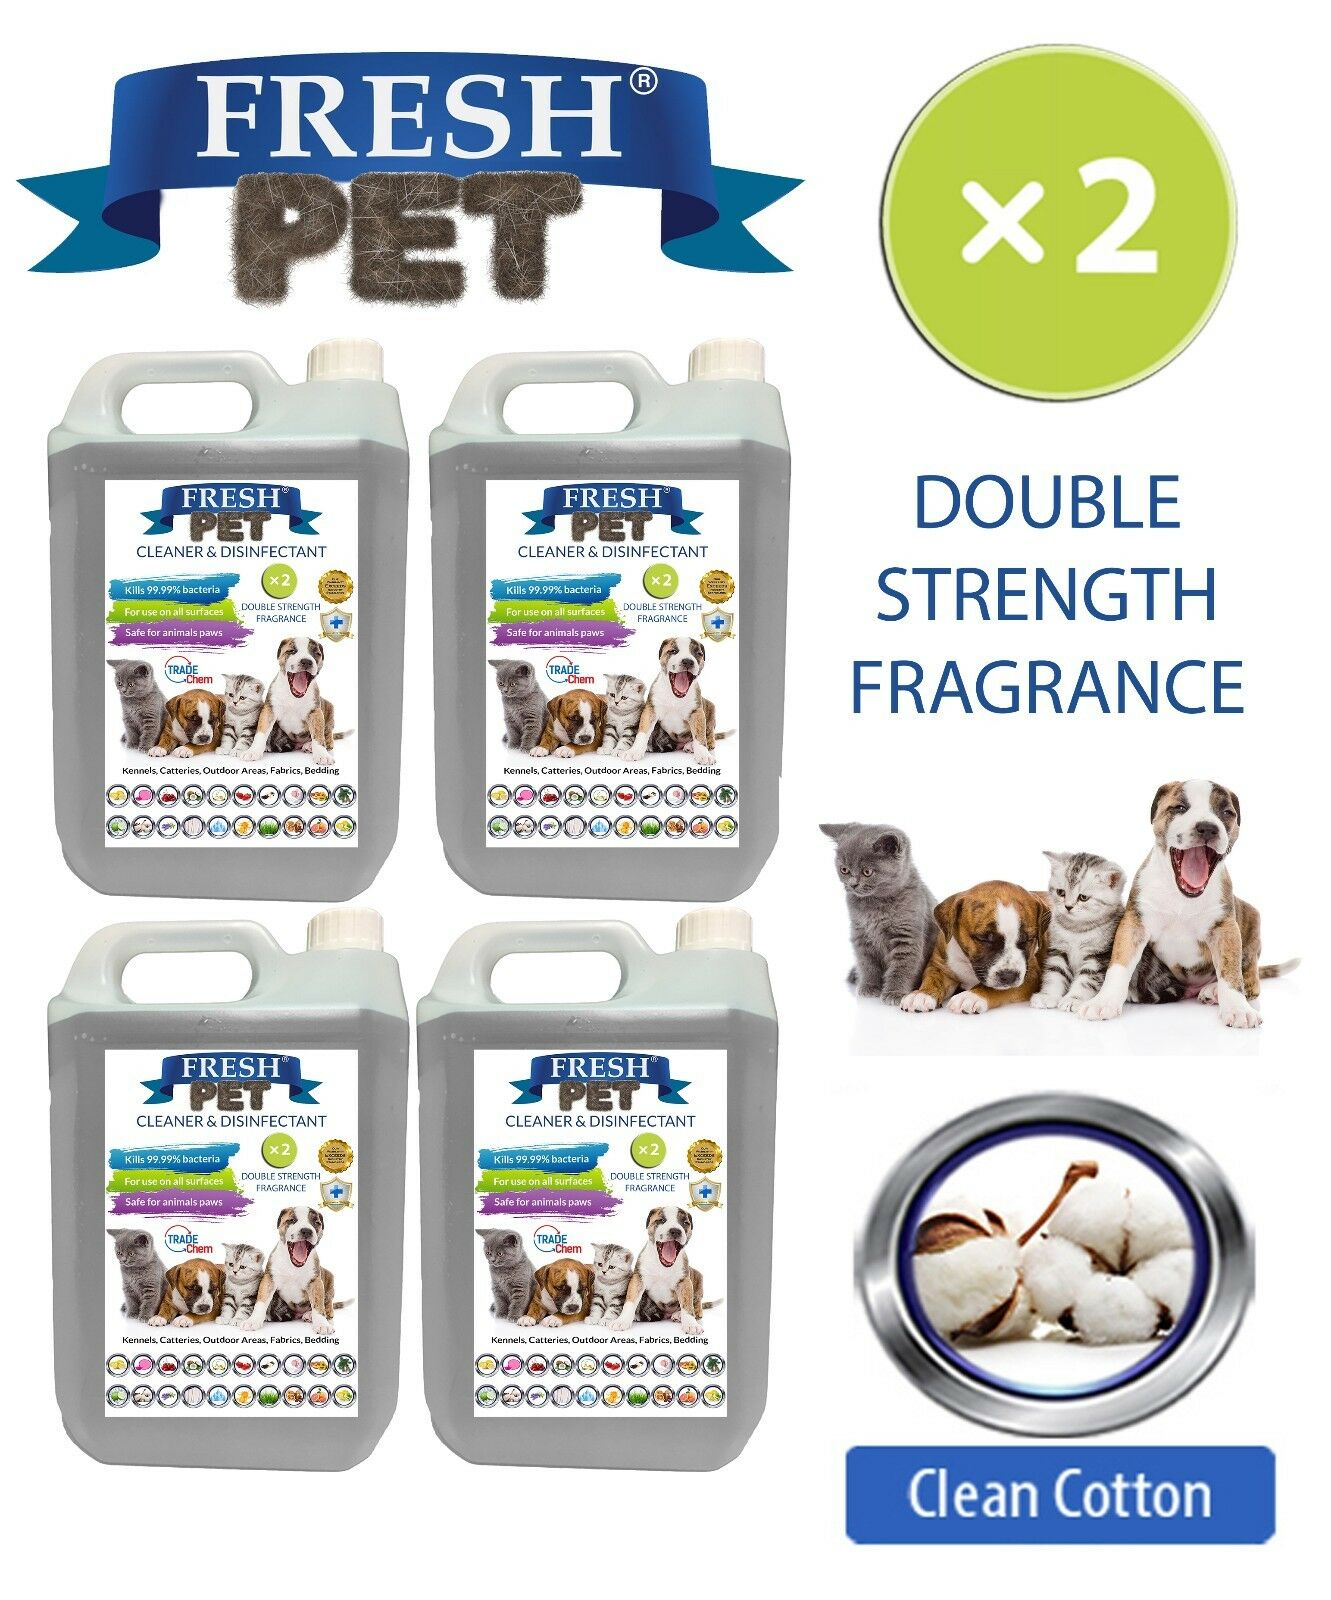 Fresh Pet Kennel Dog Disinfectant Double Strength Fragrance 4x5L Clean Cotton